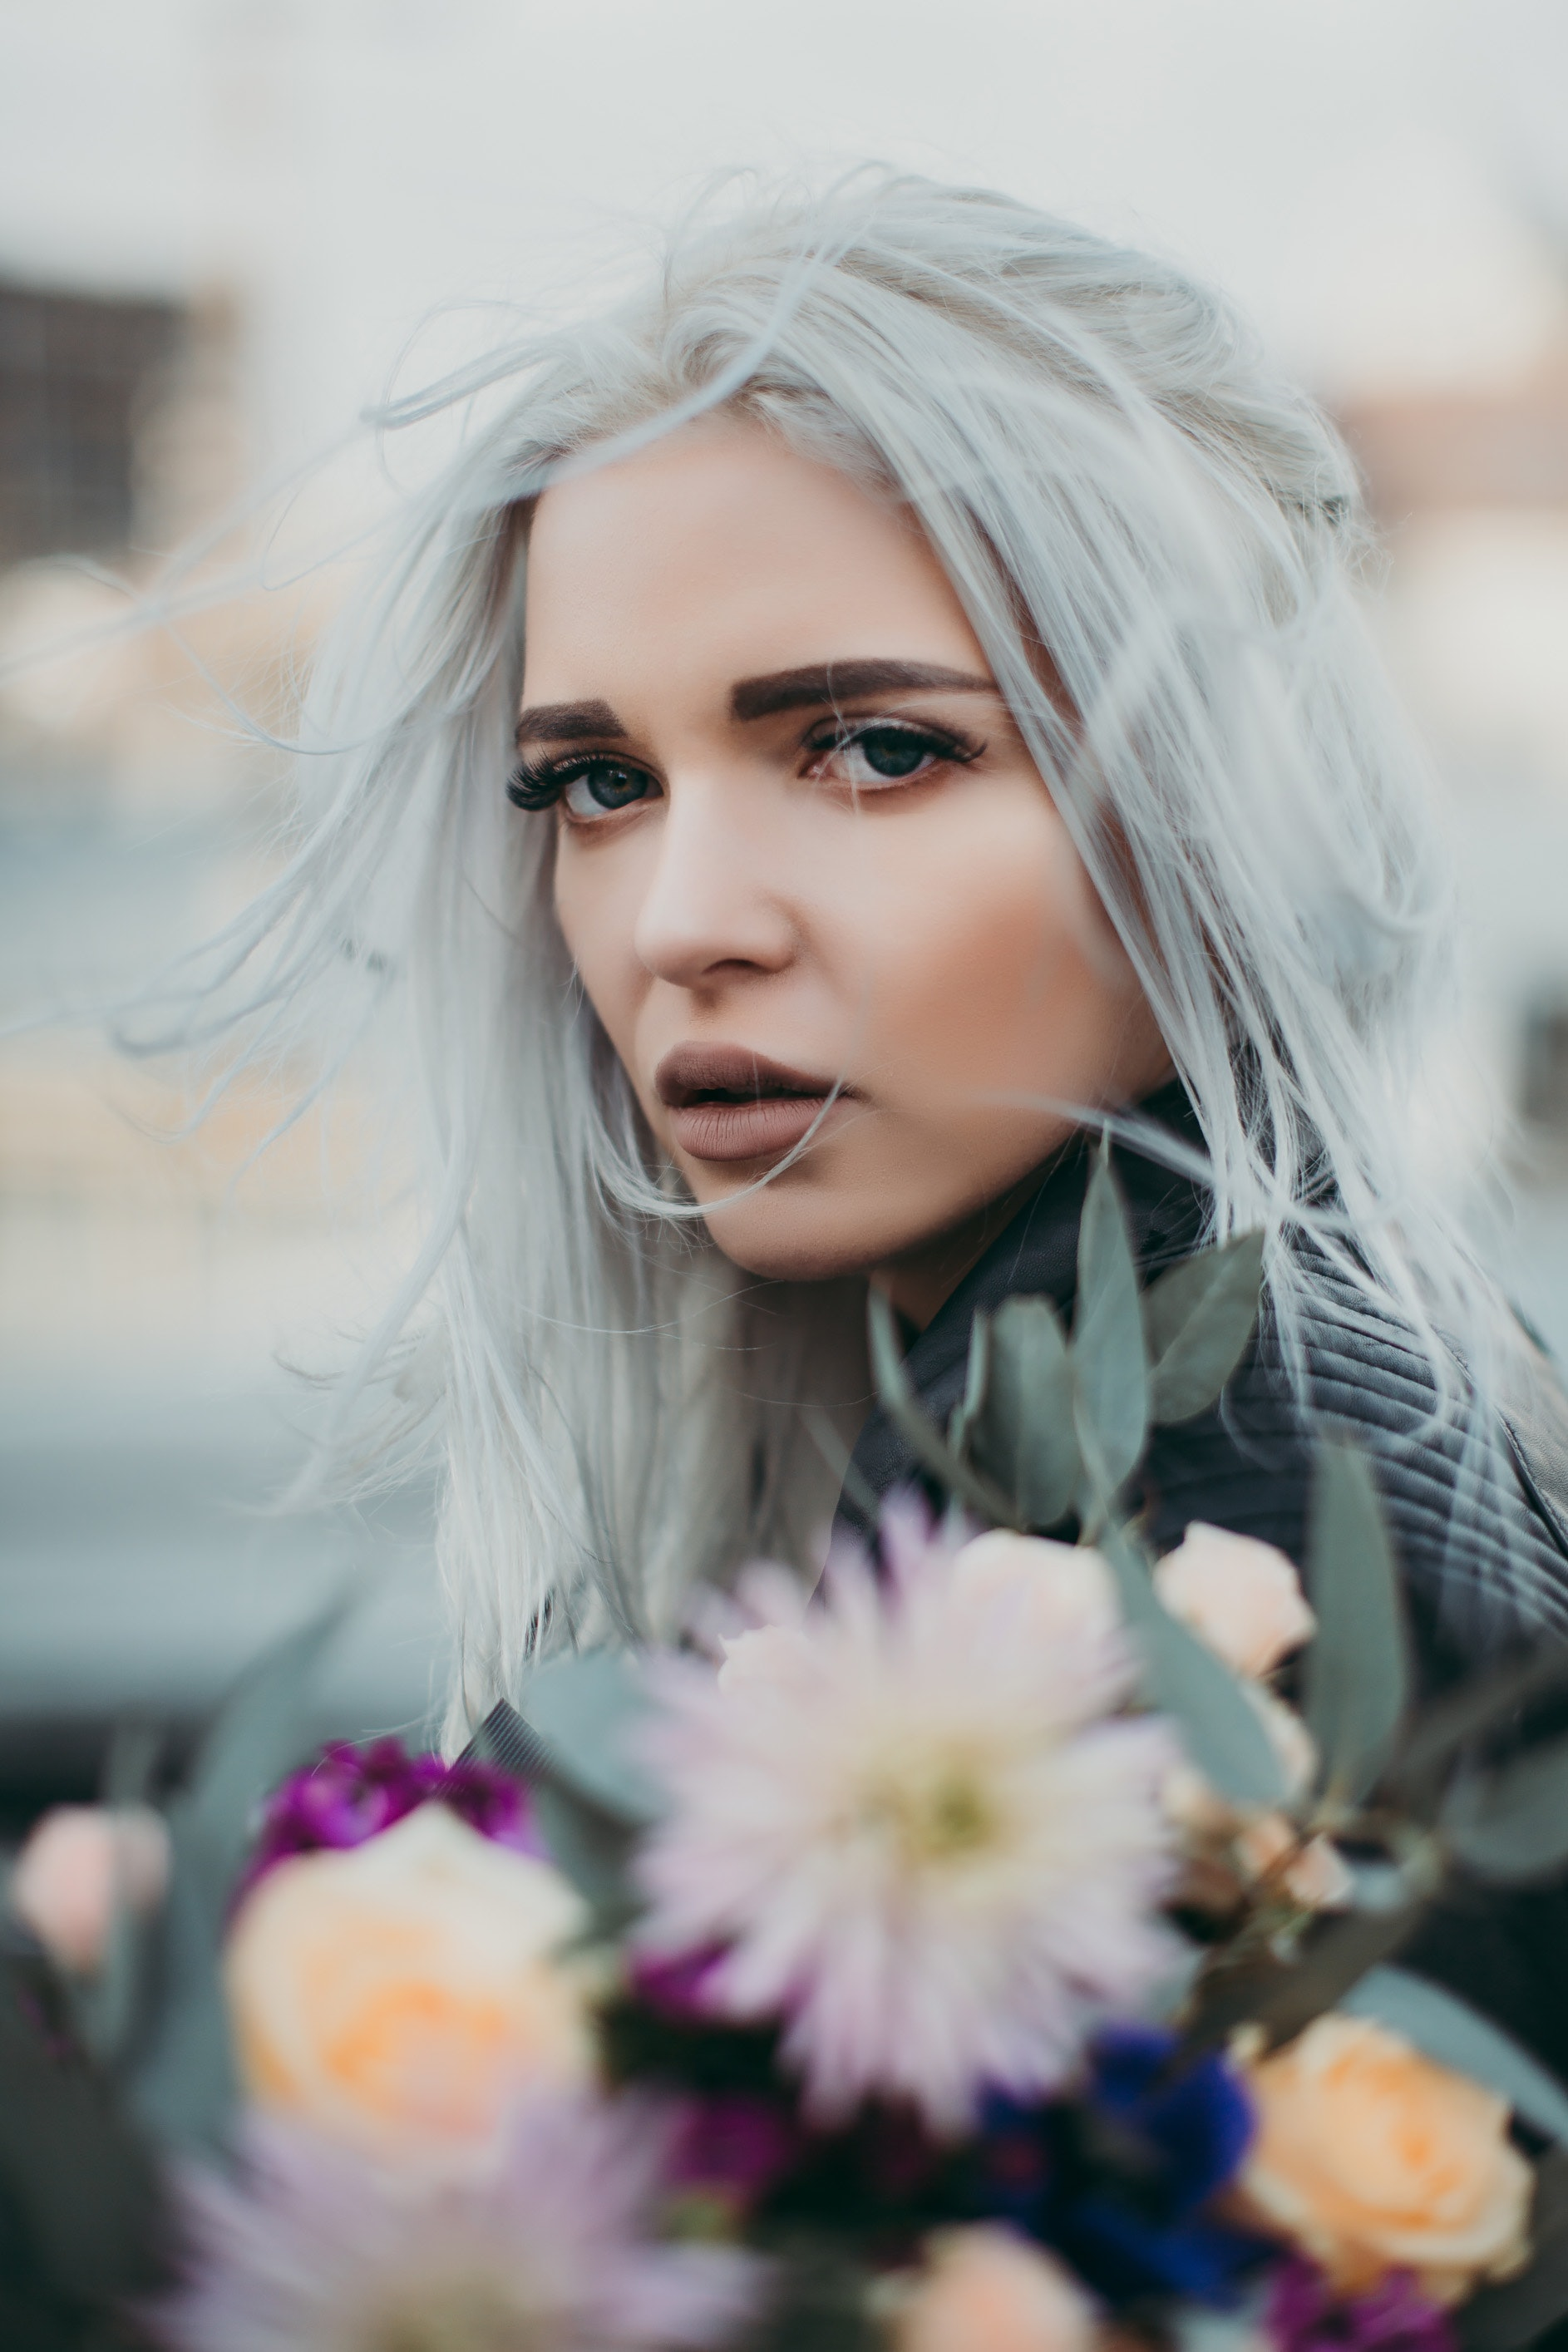 Woman with silver hair surrounded by flowers.